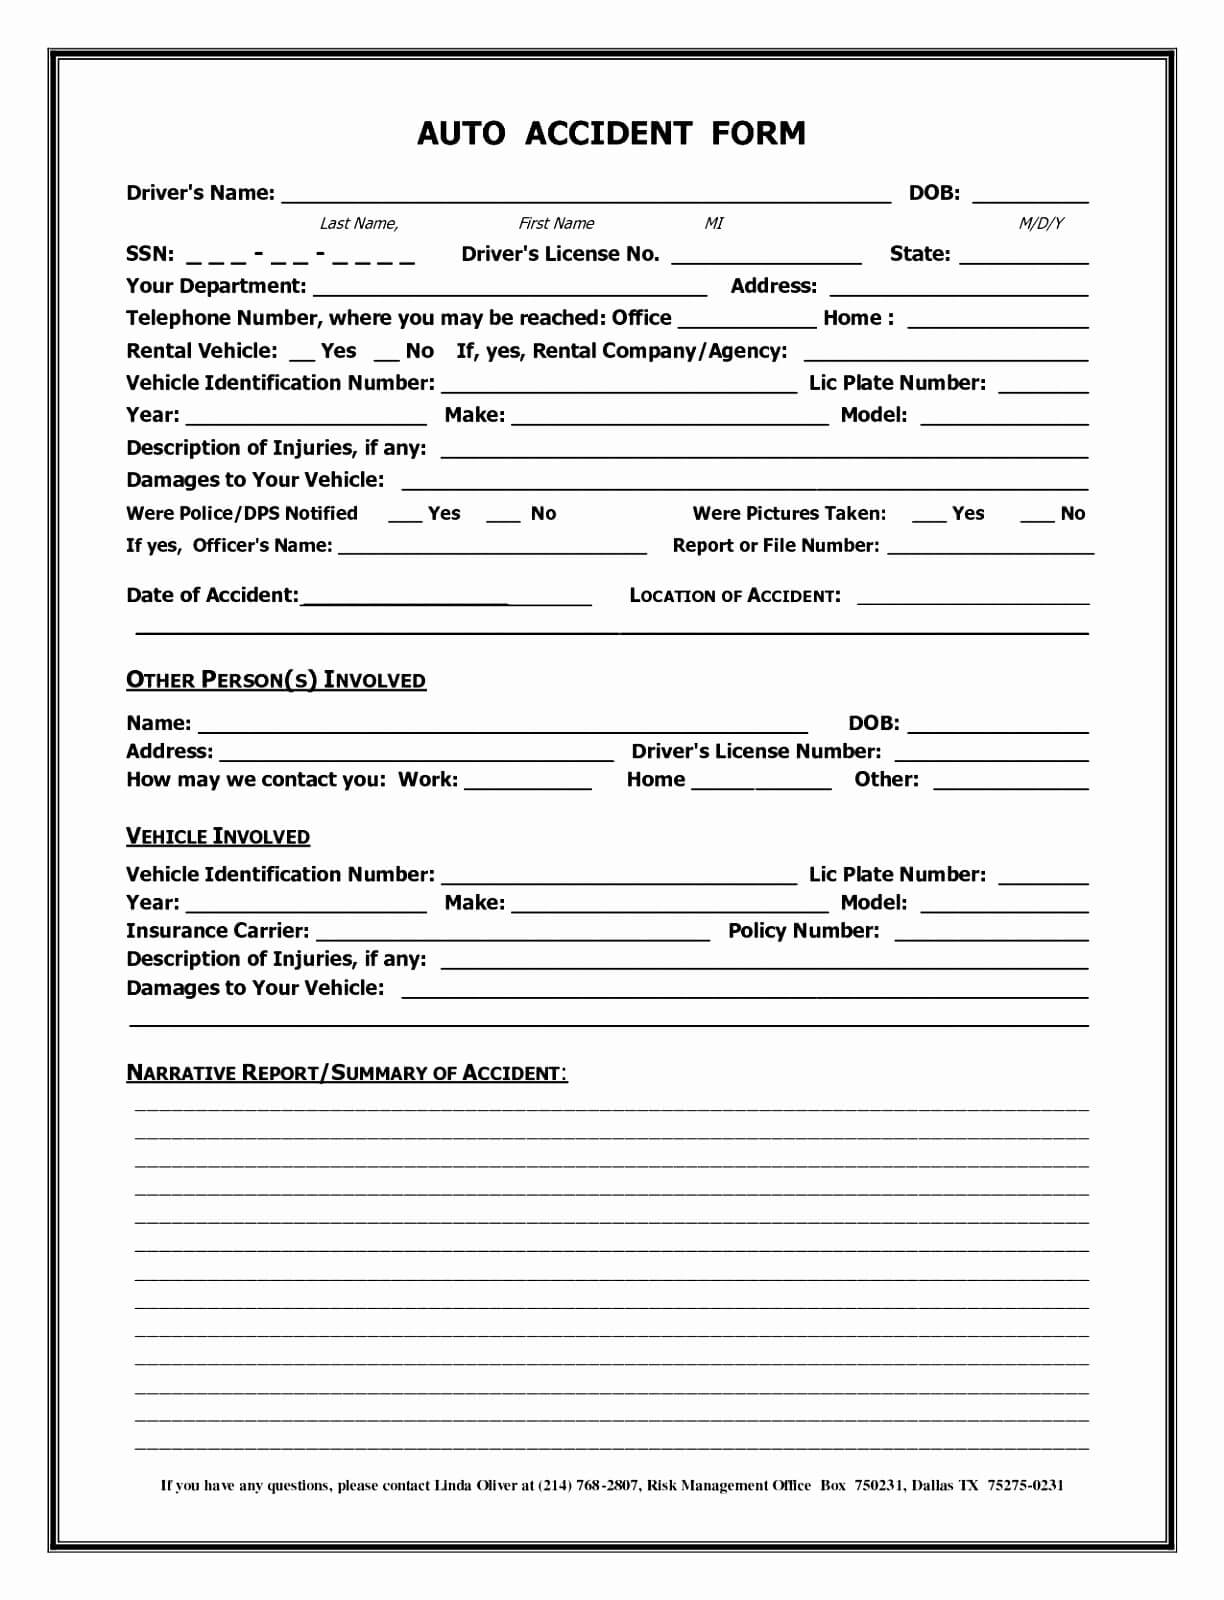 Accident Report Form Template Uk - Atlantaauctionco Inside Accident Report Form Template Uk